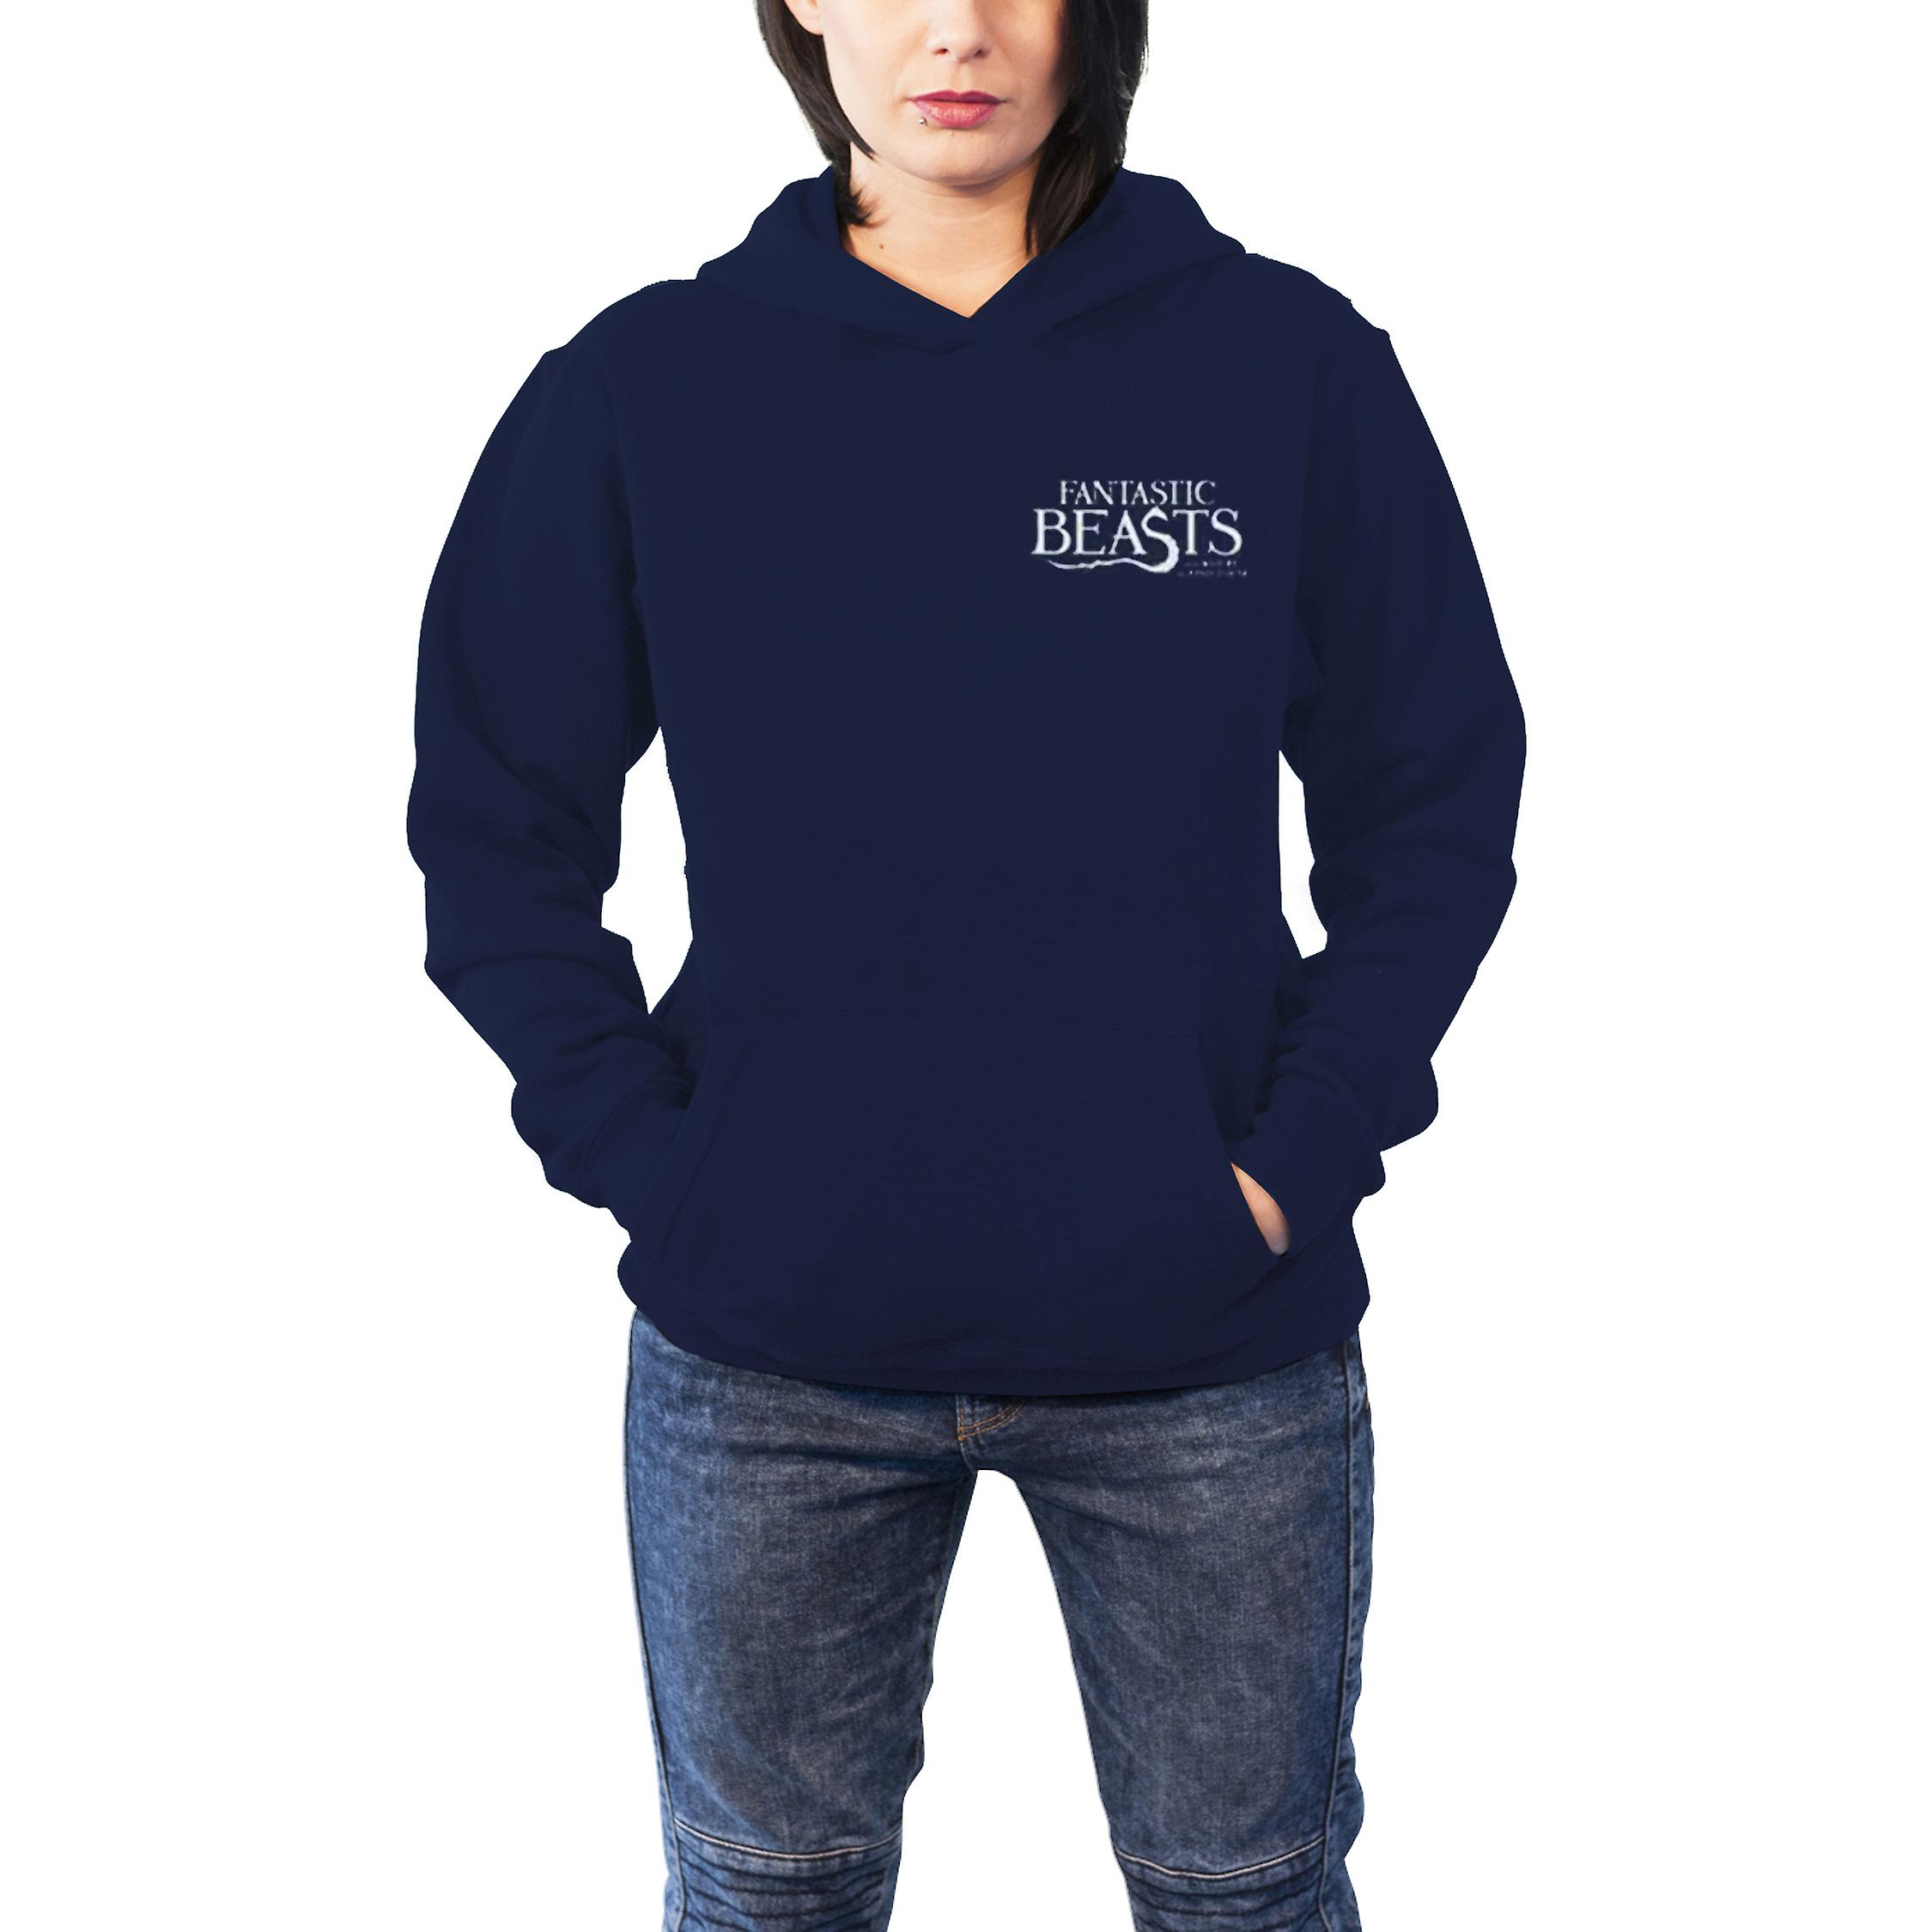 Fantastiska Beasts hoodie Macusa logo nya officiella Womens Slim Fit blå Pullover